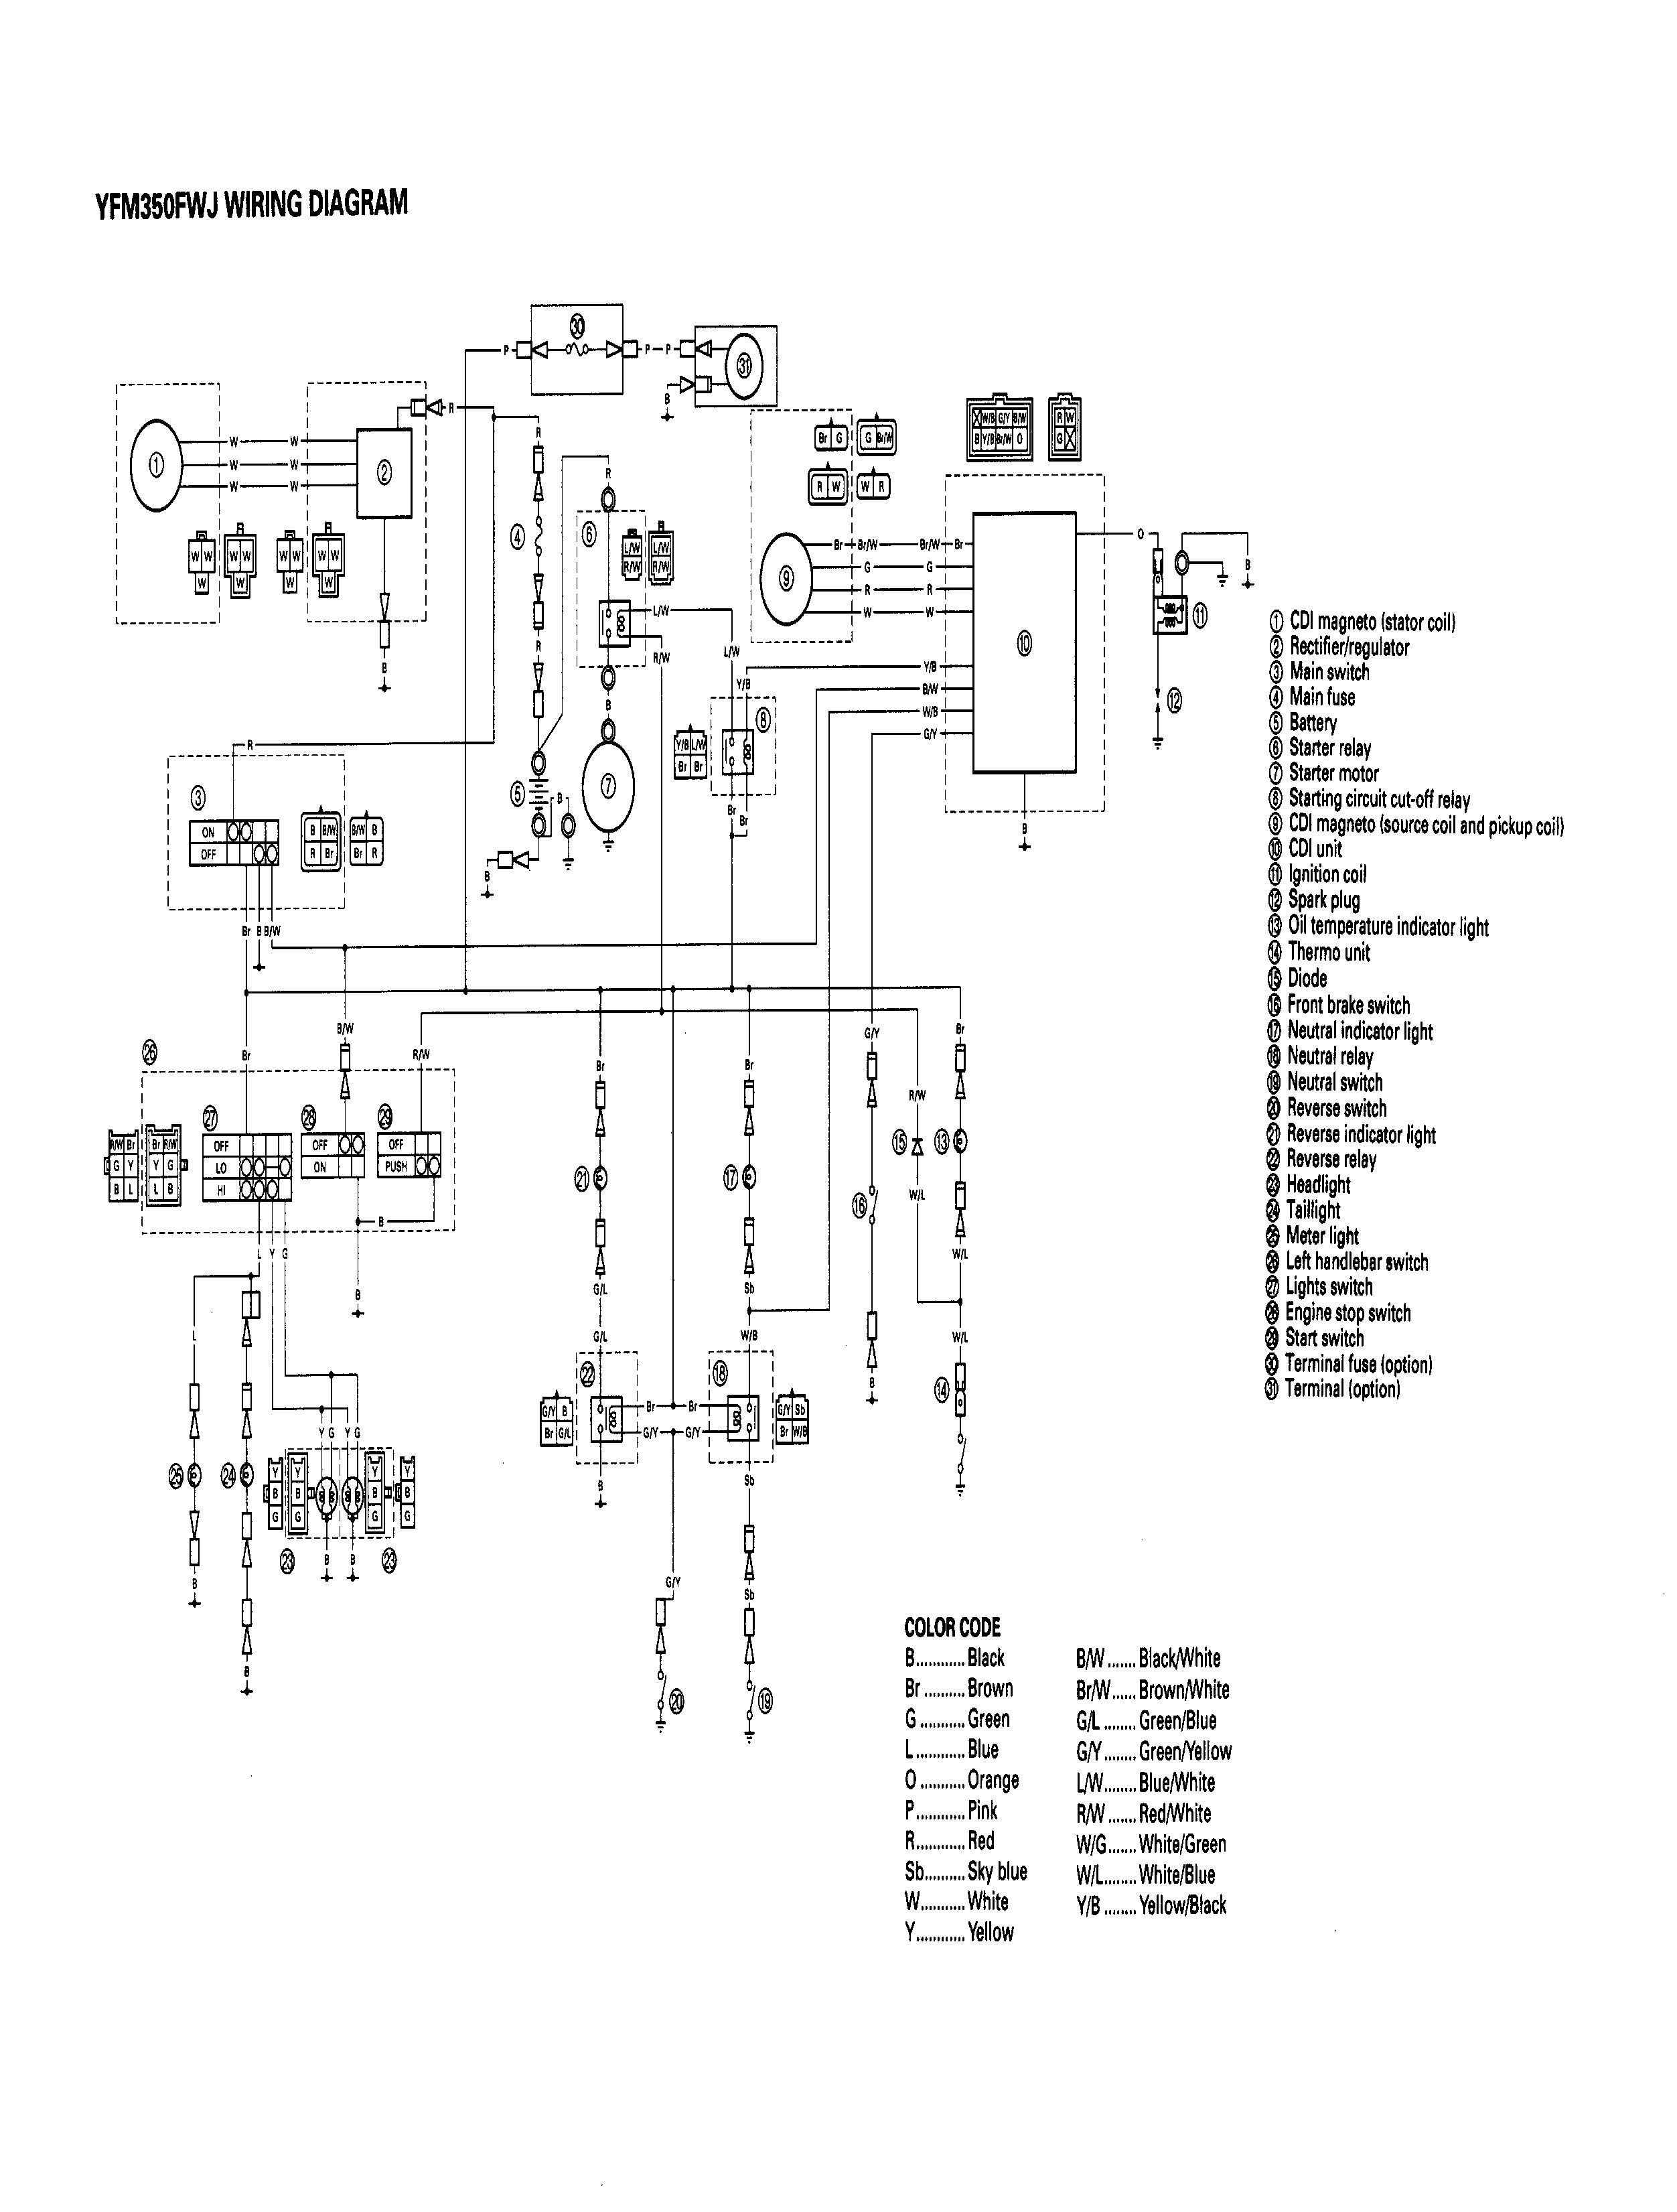 Yamaha Warrior 350 Wiring Specs Wiring Diagram Schematic